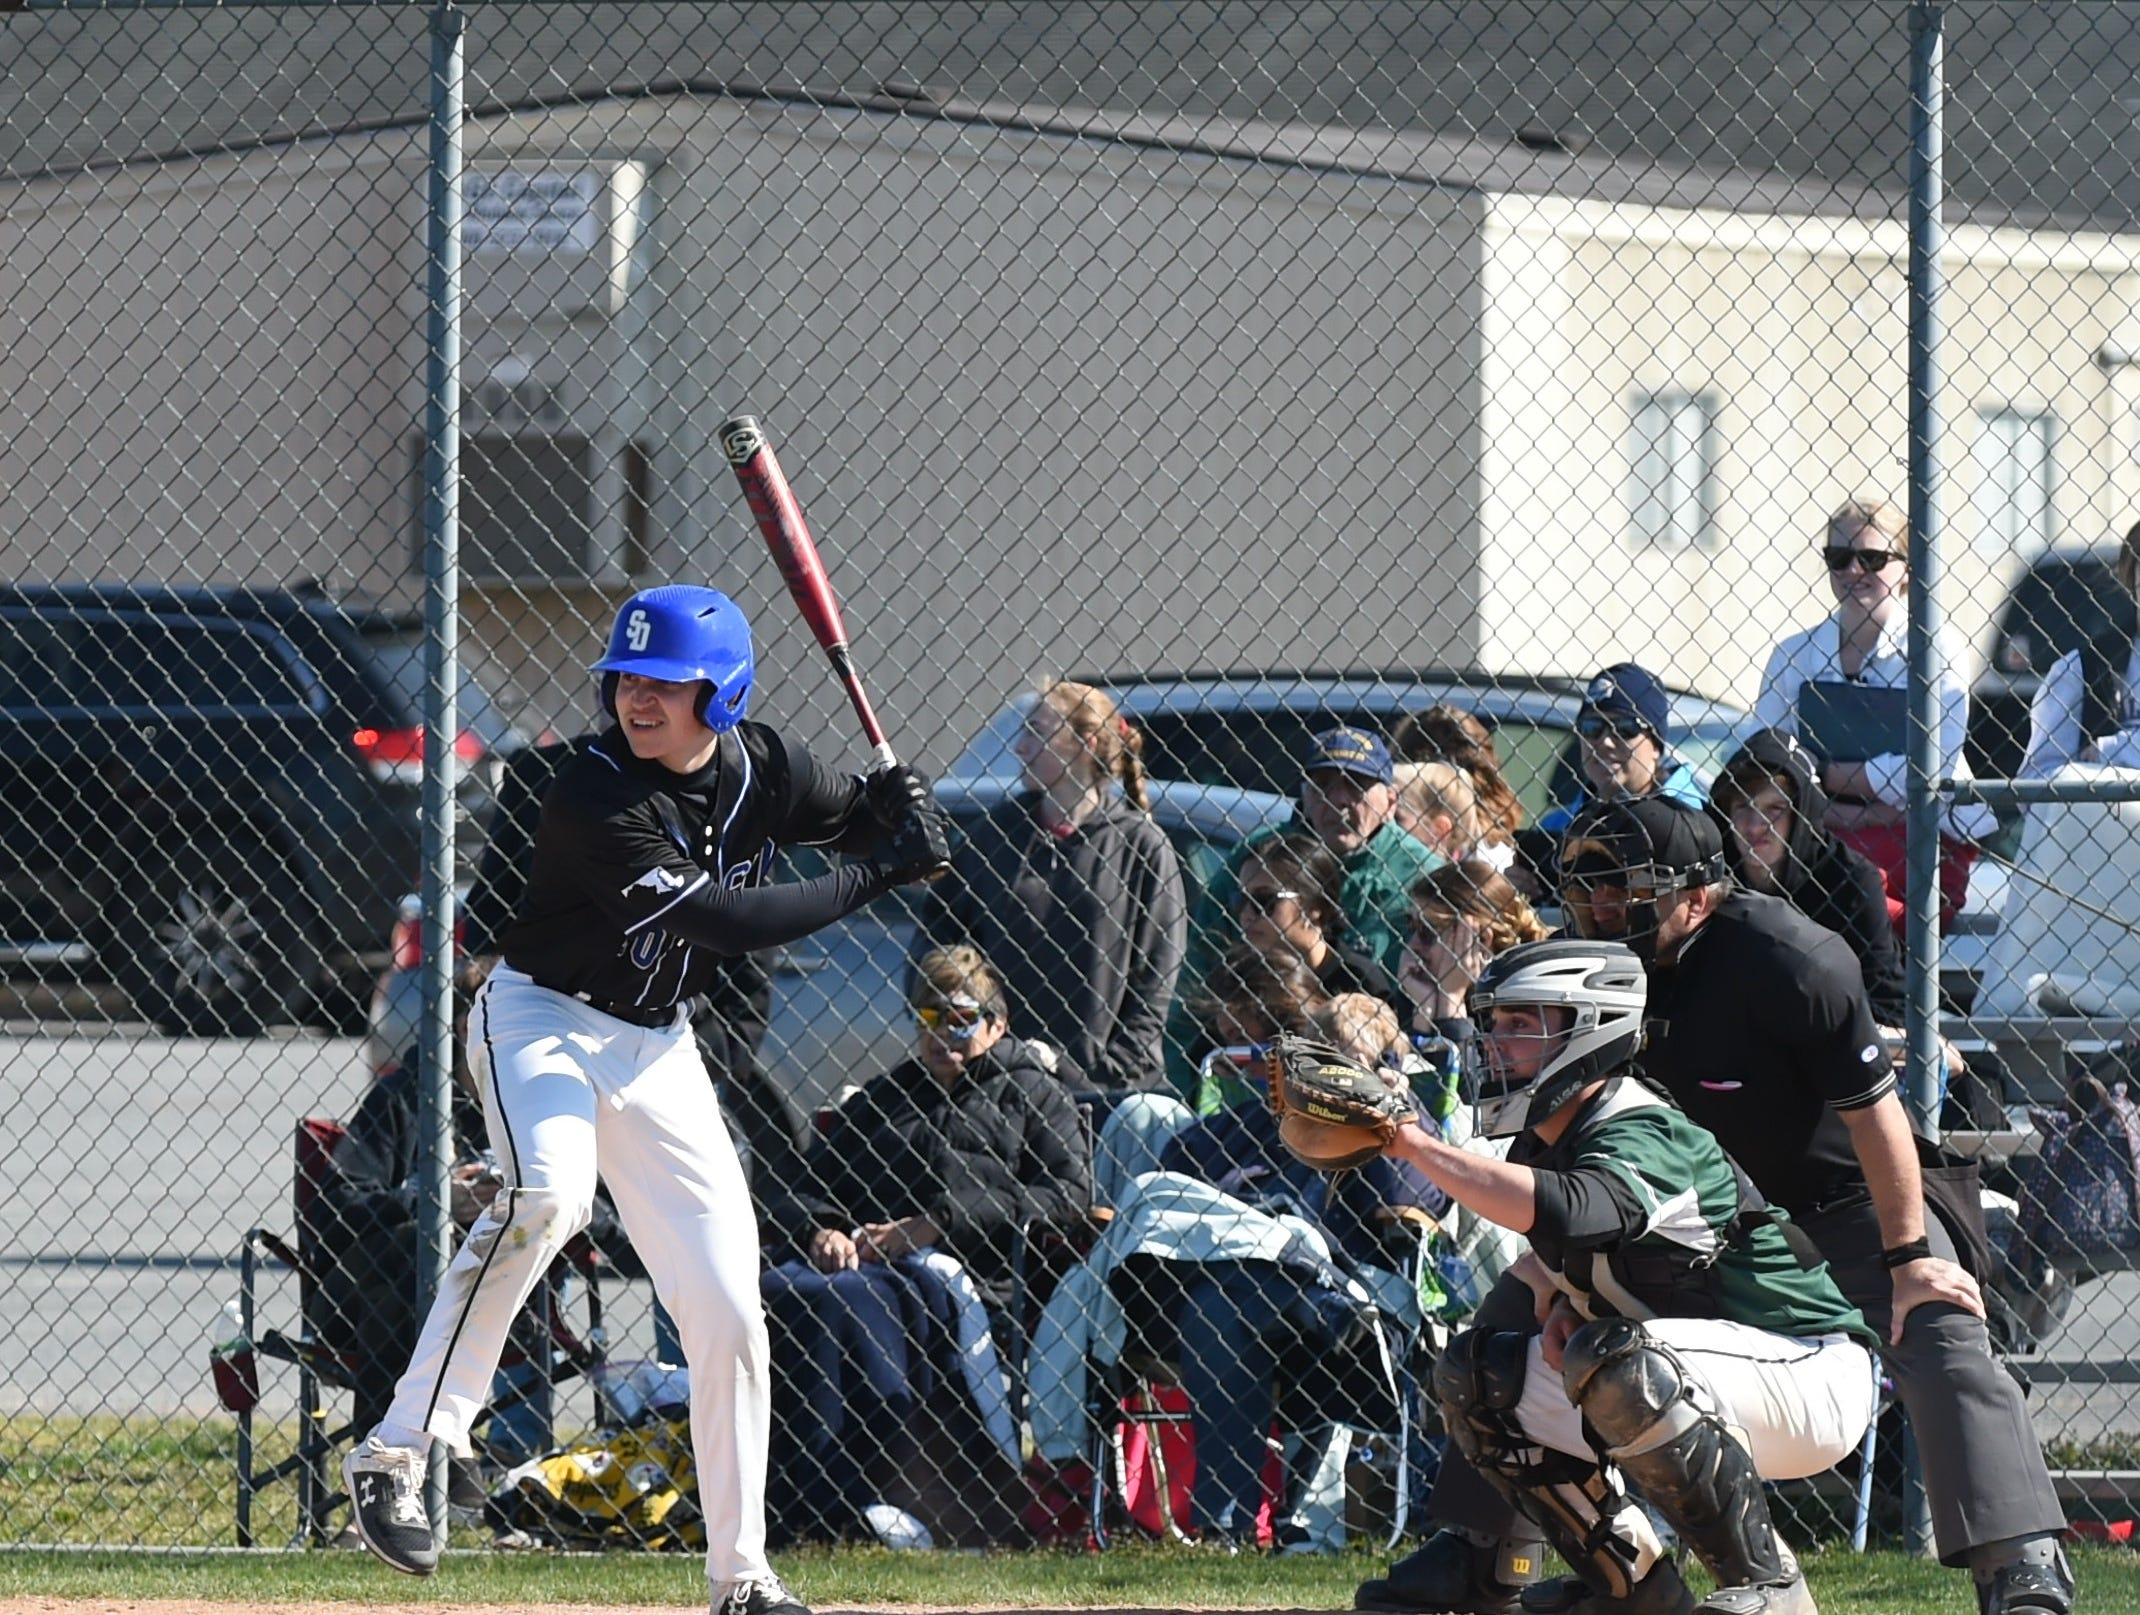 Stephen Decatur's Jack Rosenberg stares down a pitch on Wednesday, April 3, 2019.